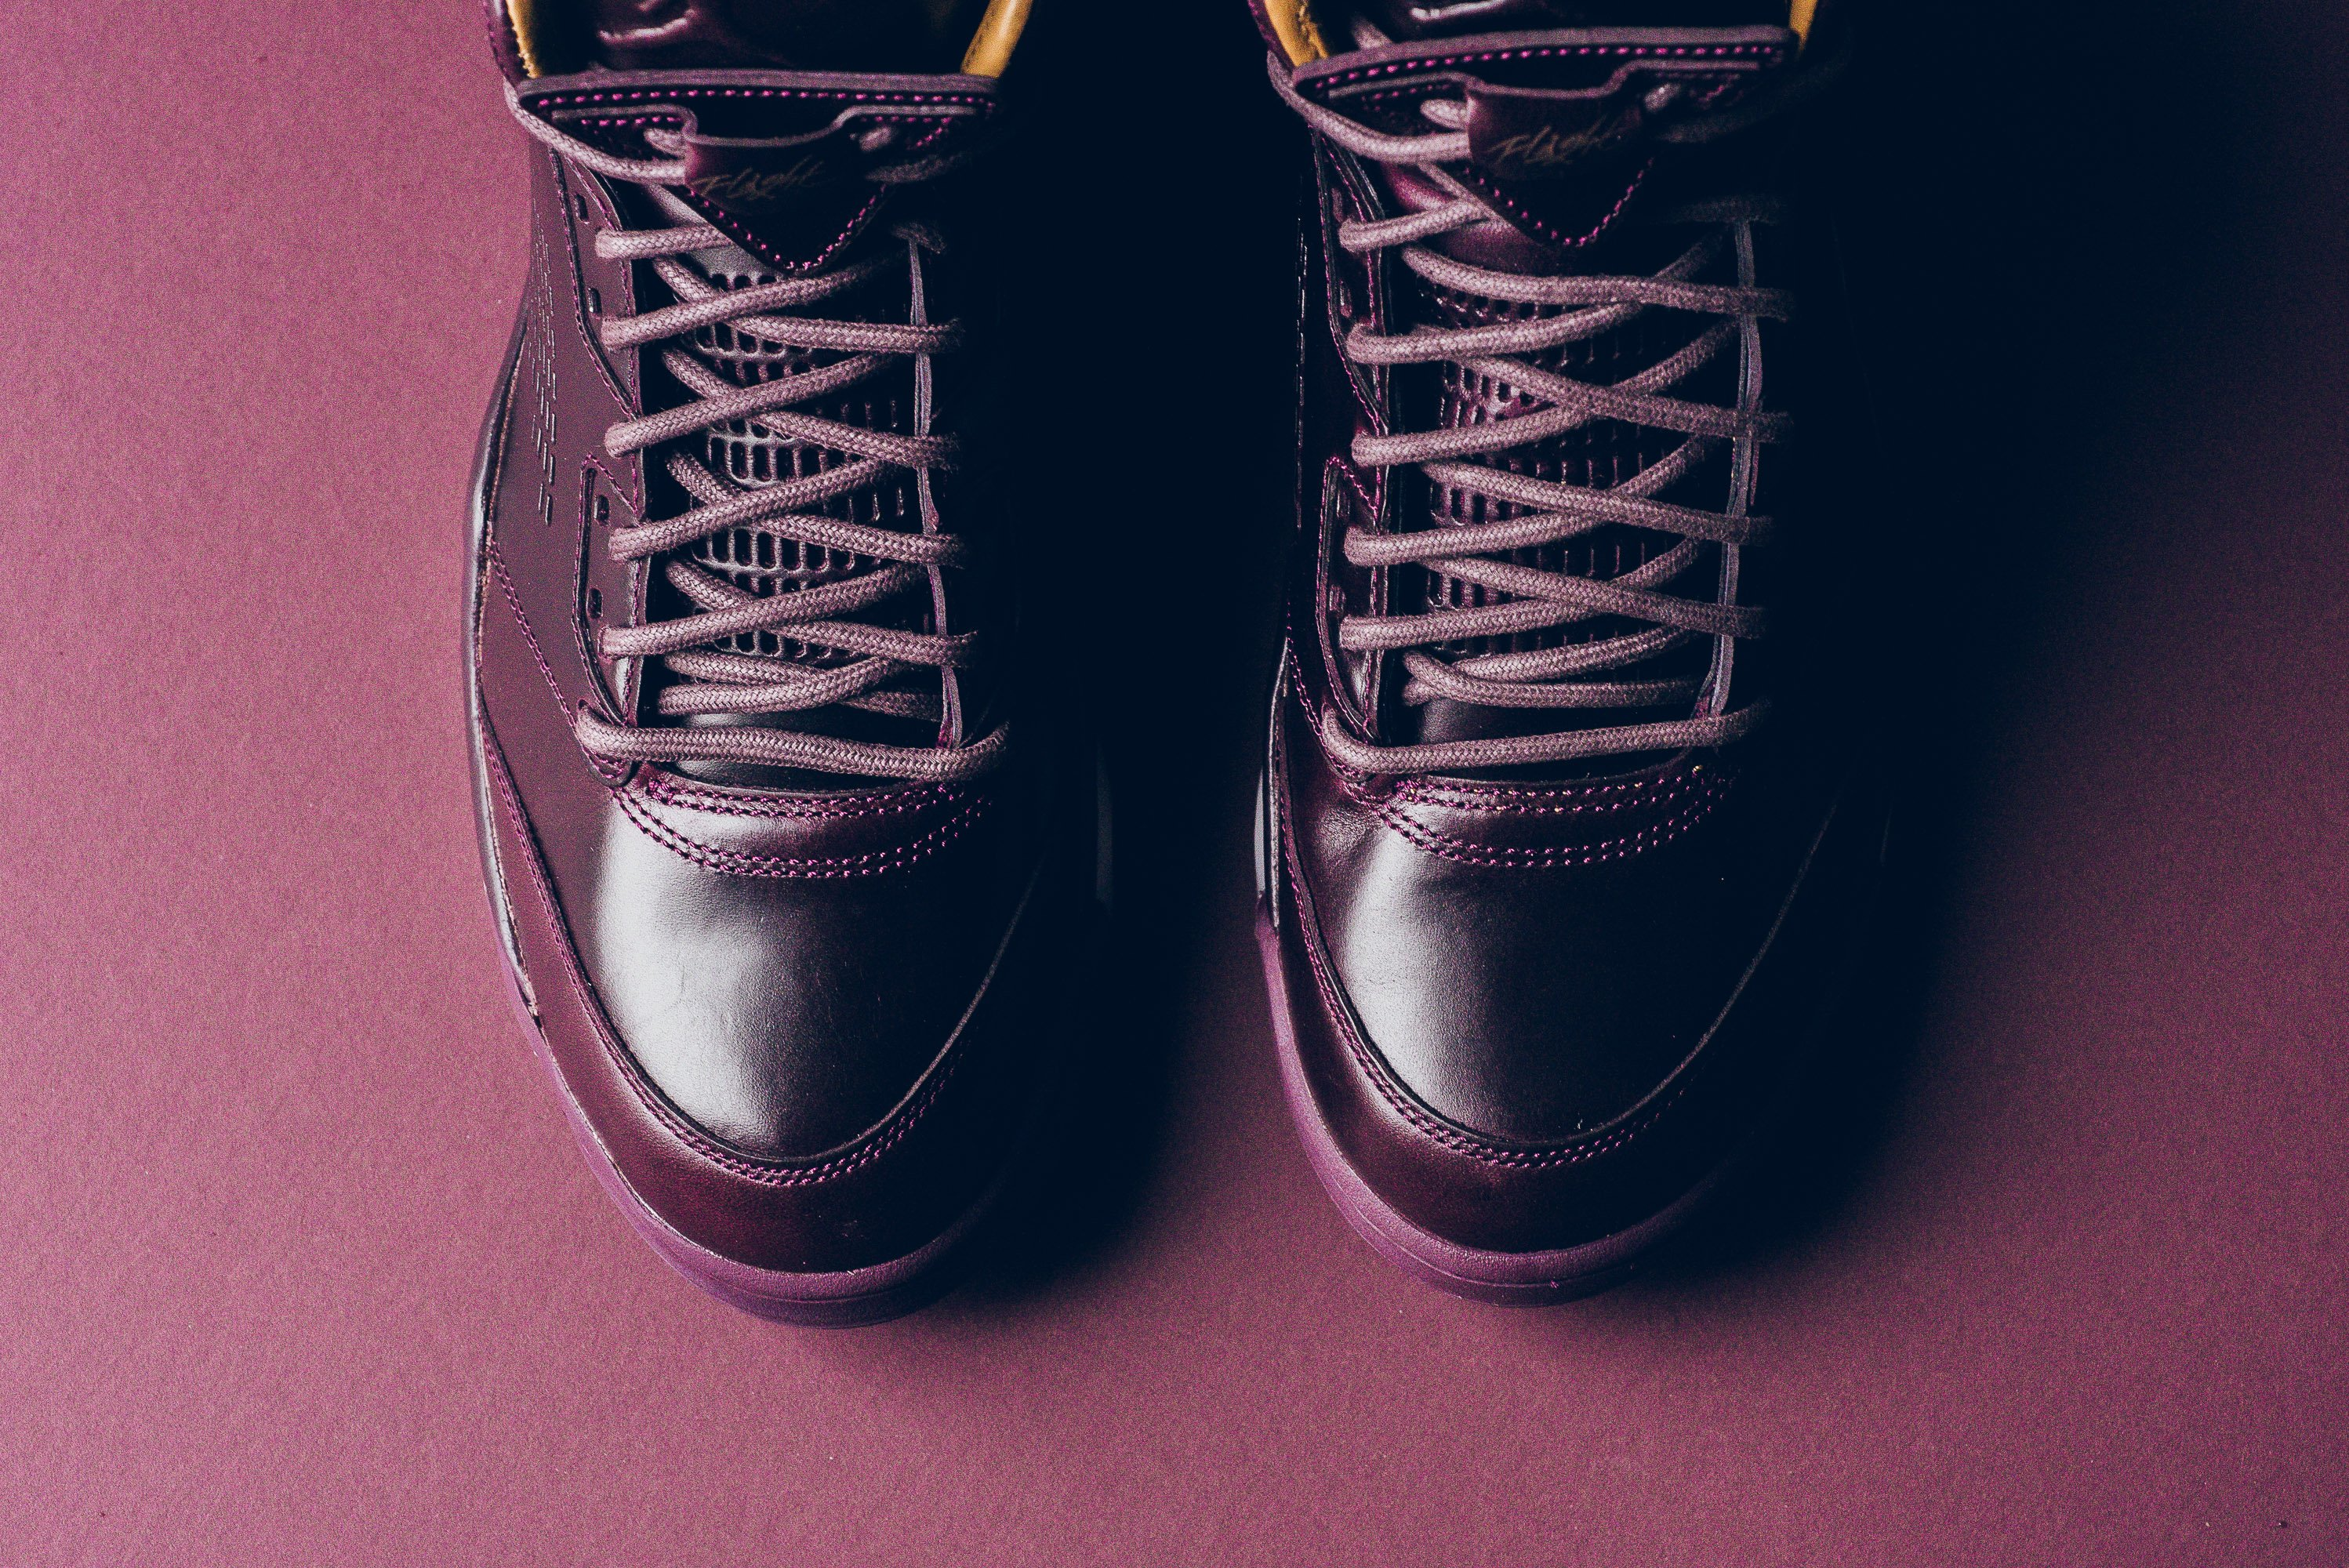 Air_JOrdan_5_retro_Premium_bordeaux_881432_612_sneaker_politics_8